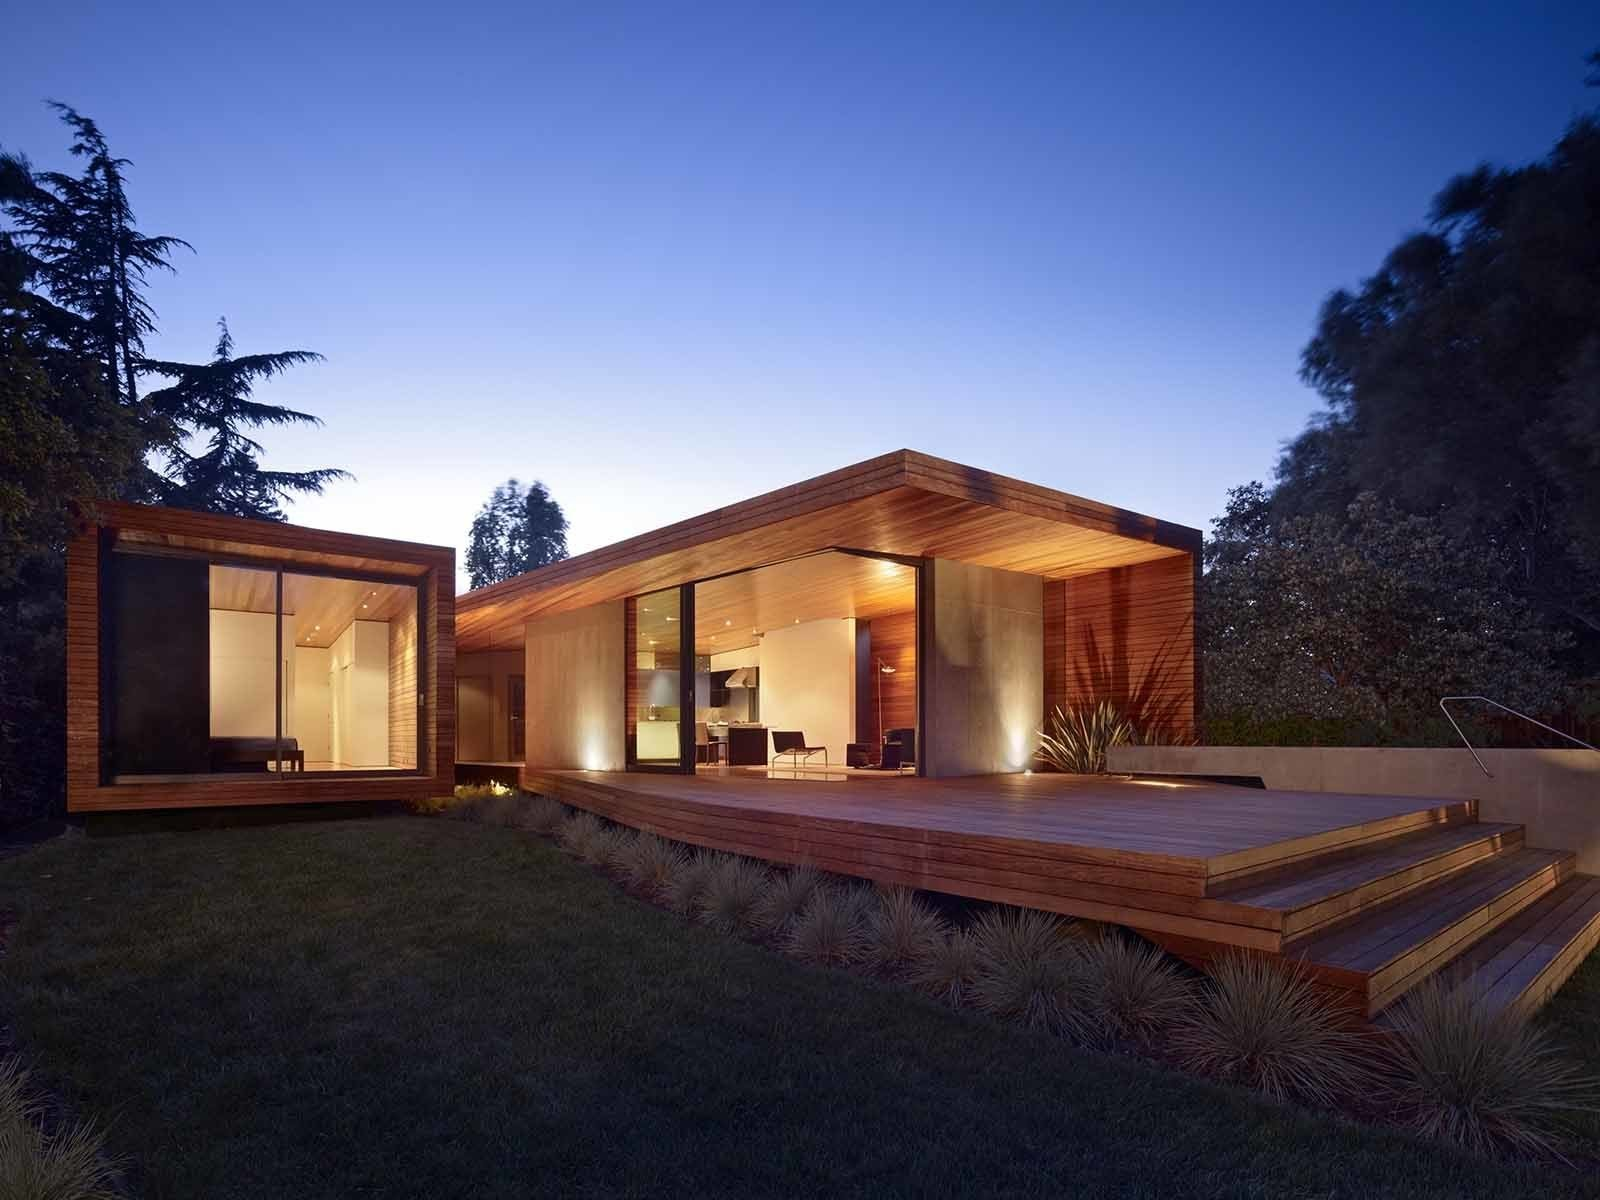 Open and inviting, the addition enables a fluid indoor-outdoor connection that didn't exist before. Tagged: Back Yard, Shrubs, Wood, Exterior, House, and Wood.  Best Exterior Wood Photos from 1950s Ranch